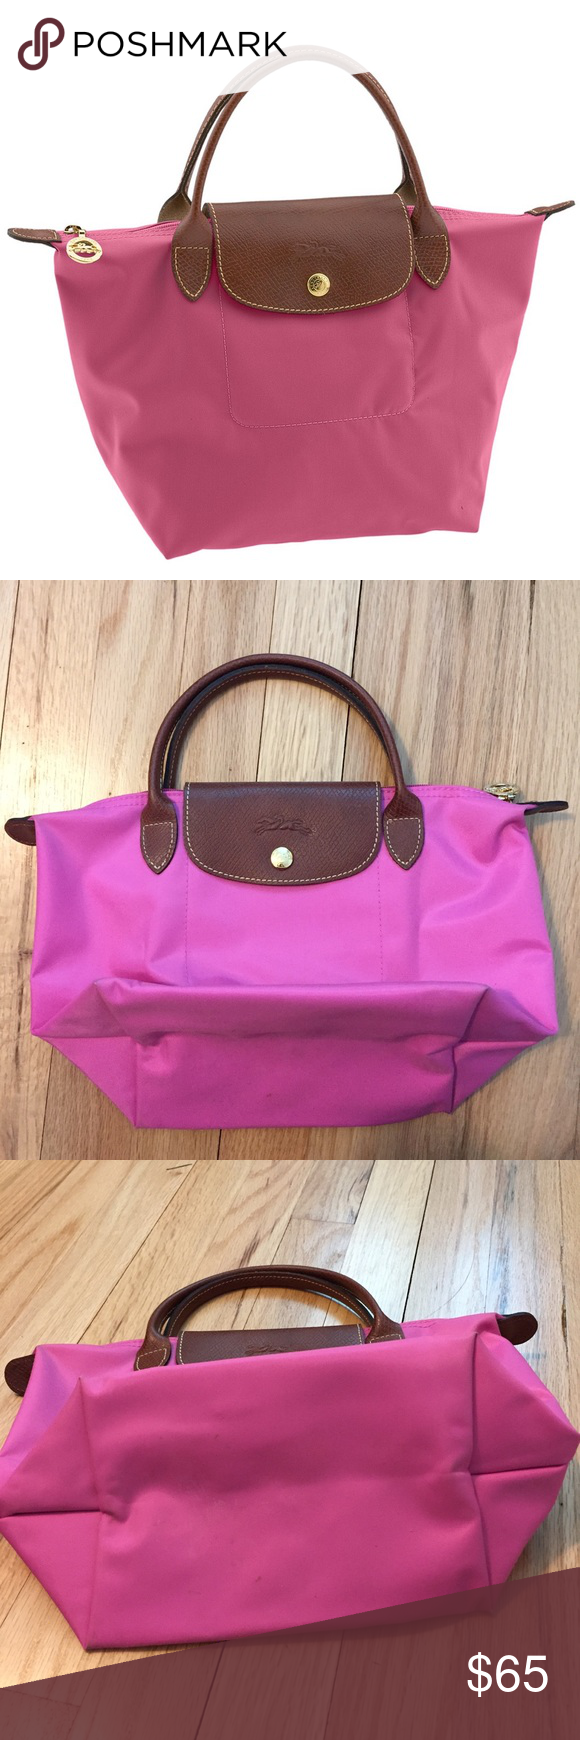 f512029bfb0 Authentic Longchamp le pliage mini pink purse Authentic Longchamp le pliage  mini pink purse with very small marks on bottom of bag otherwise in like  new ...